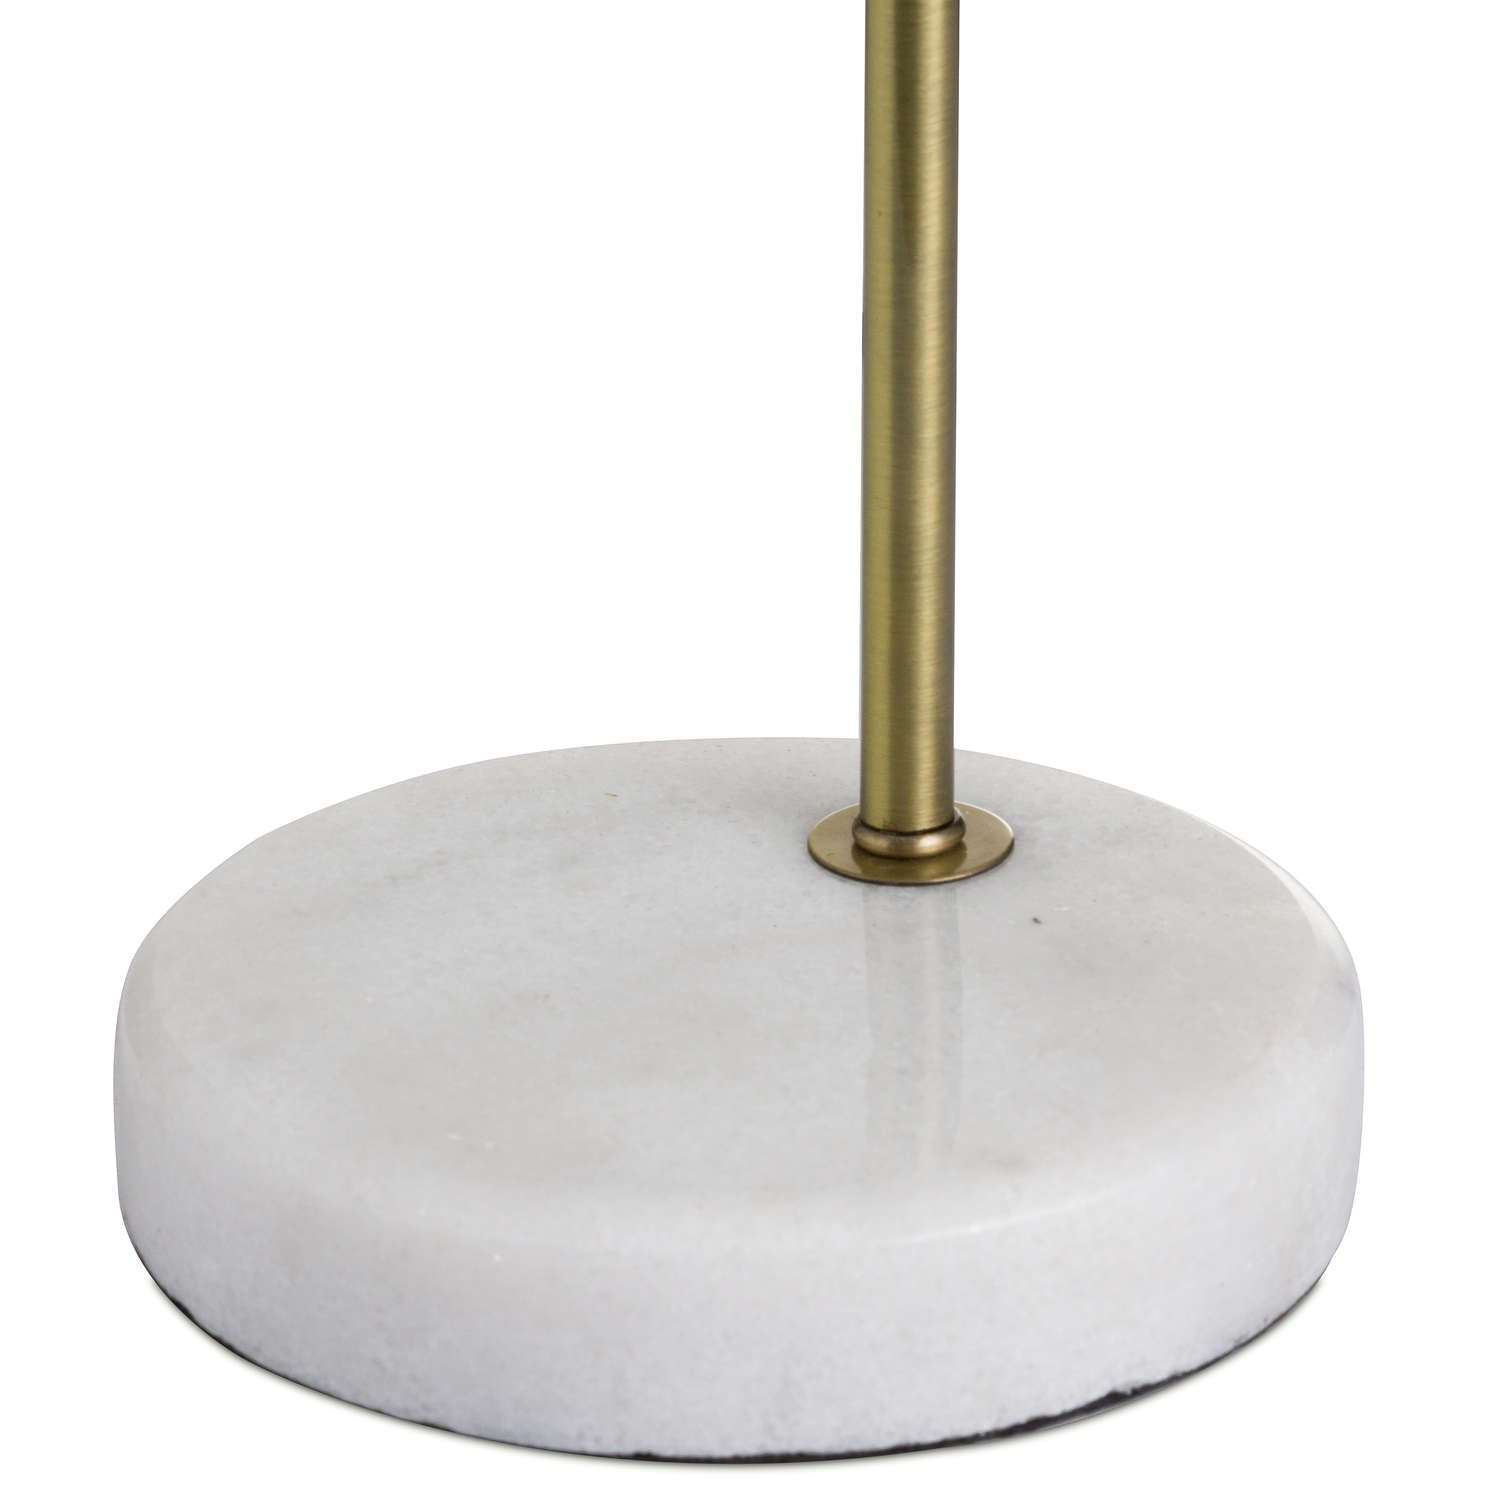 Marble & Brass Industrial Desk Lamp